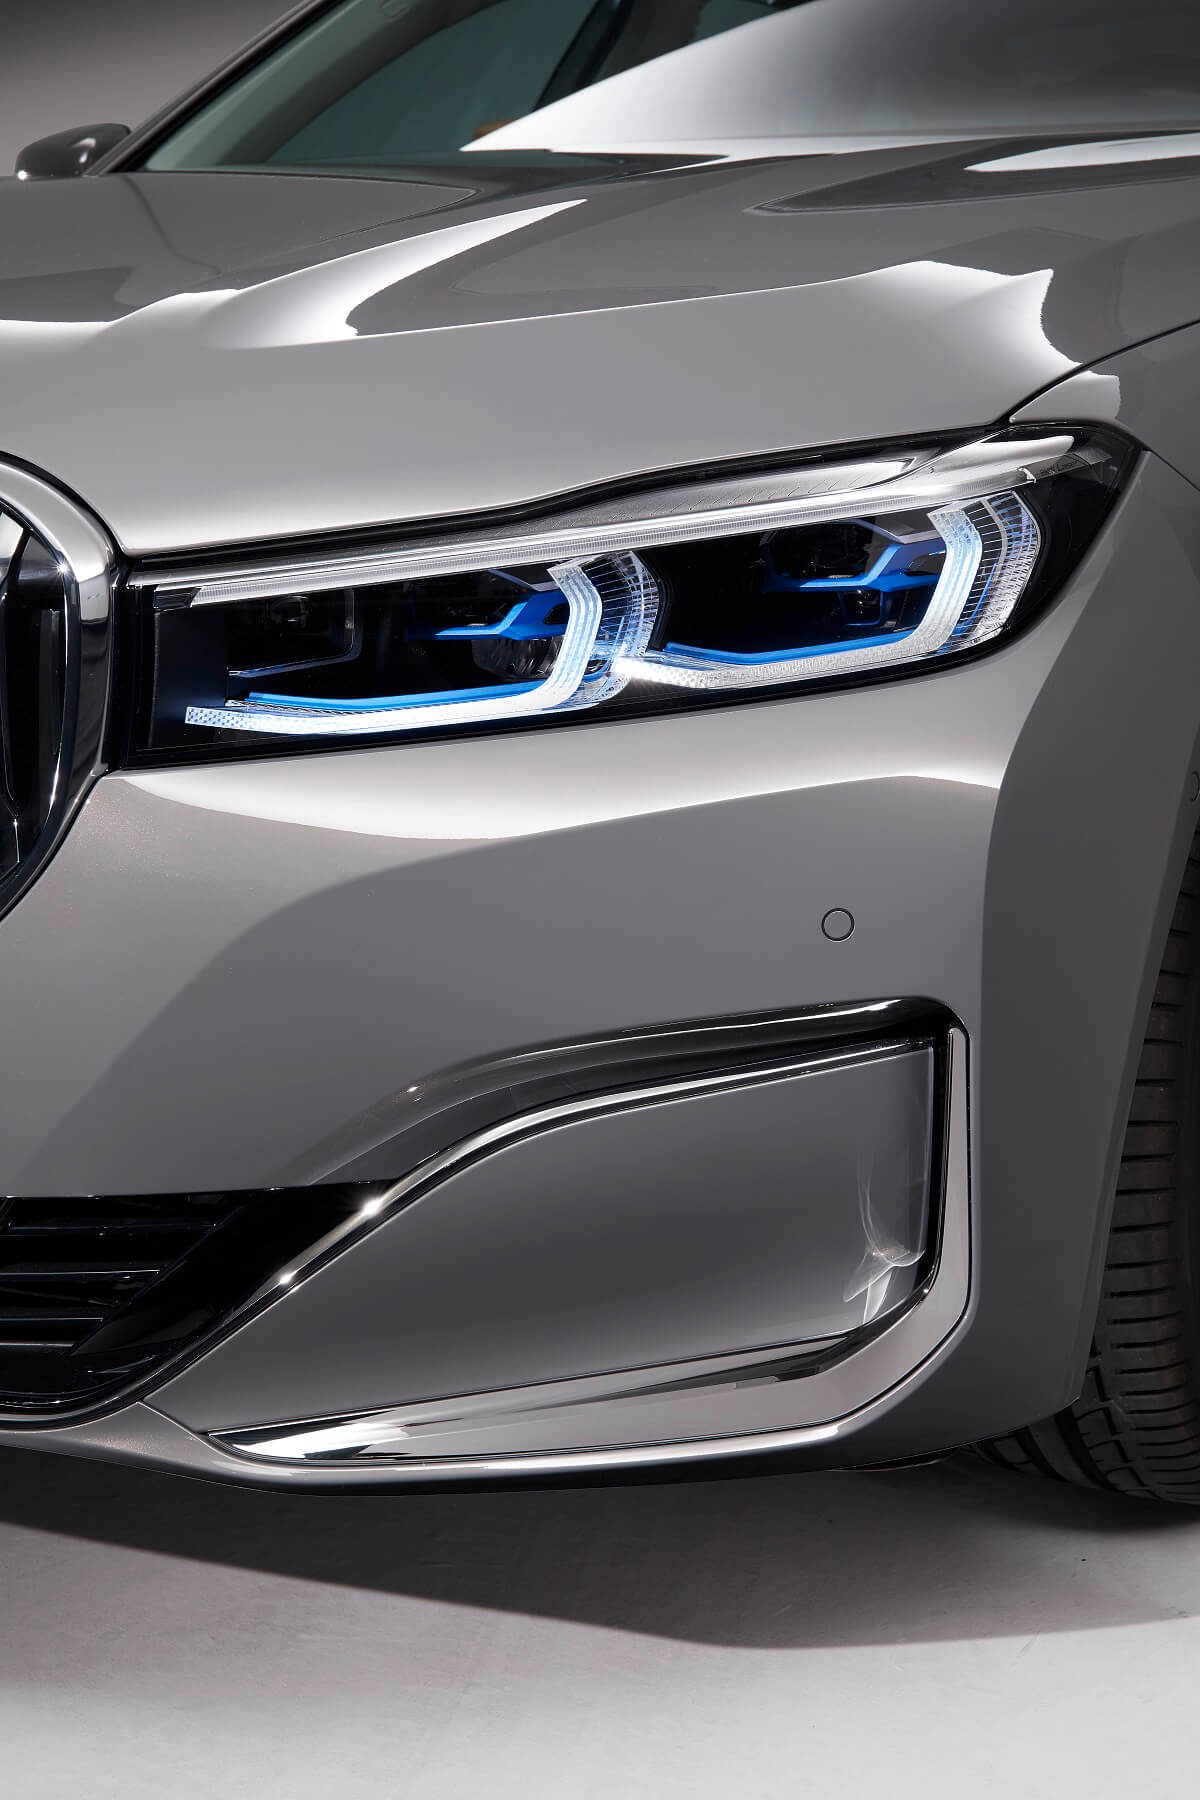 P90332008_highRes_the-new-bmw-7-series.jpg